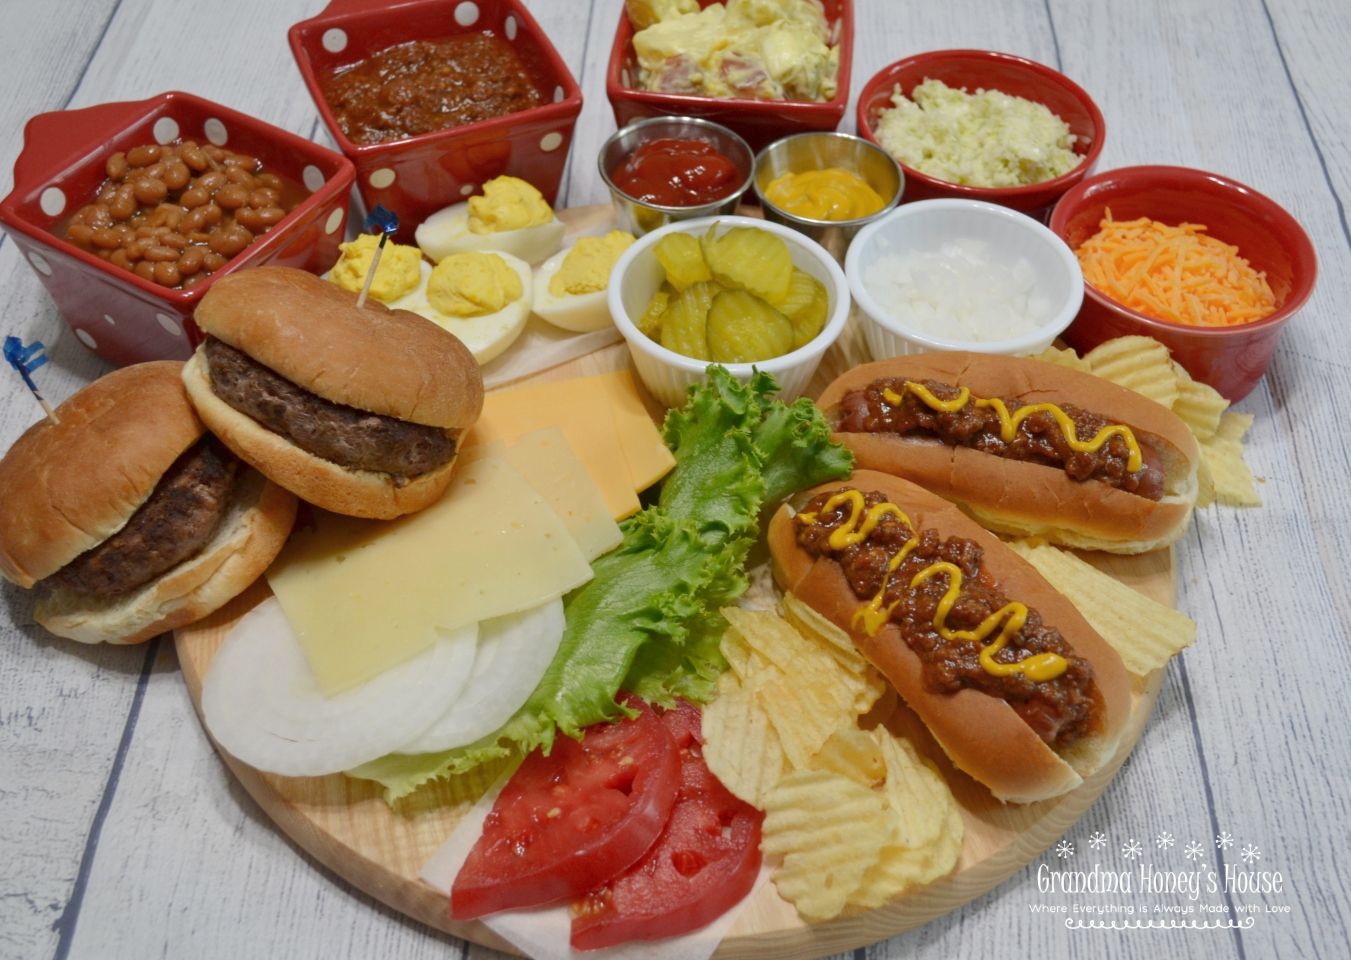 Easy Meals Served on a Board are all the rage. They are colorful and creative. This burger/hot dog board with sides is perfect for 2.